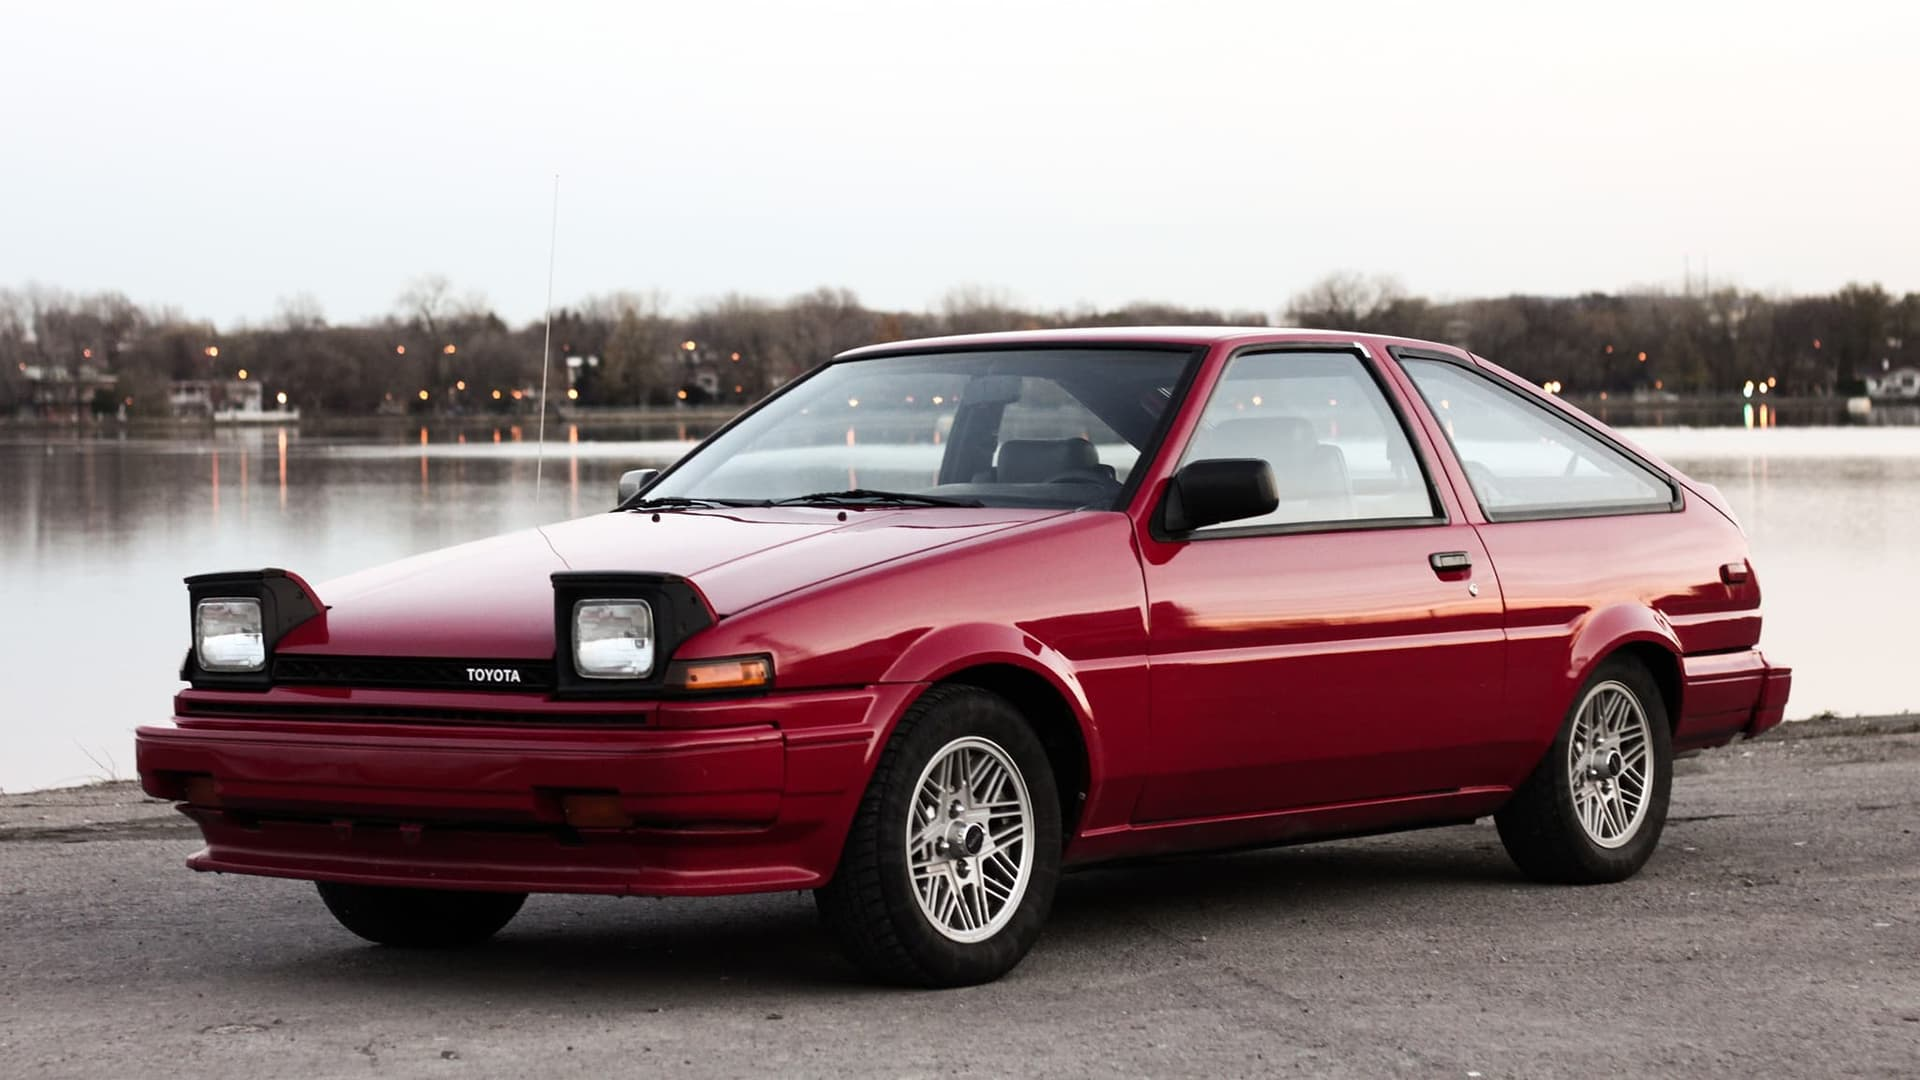 Toyota Corolla AE86 wallpapers HD High Resolution